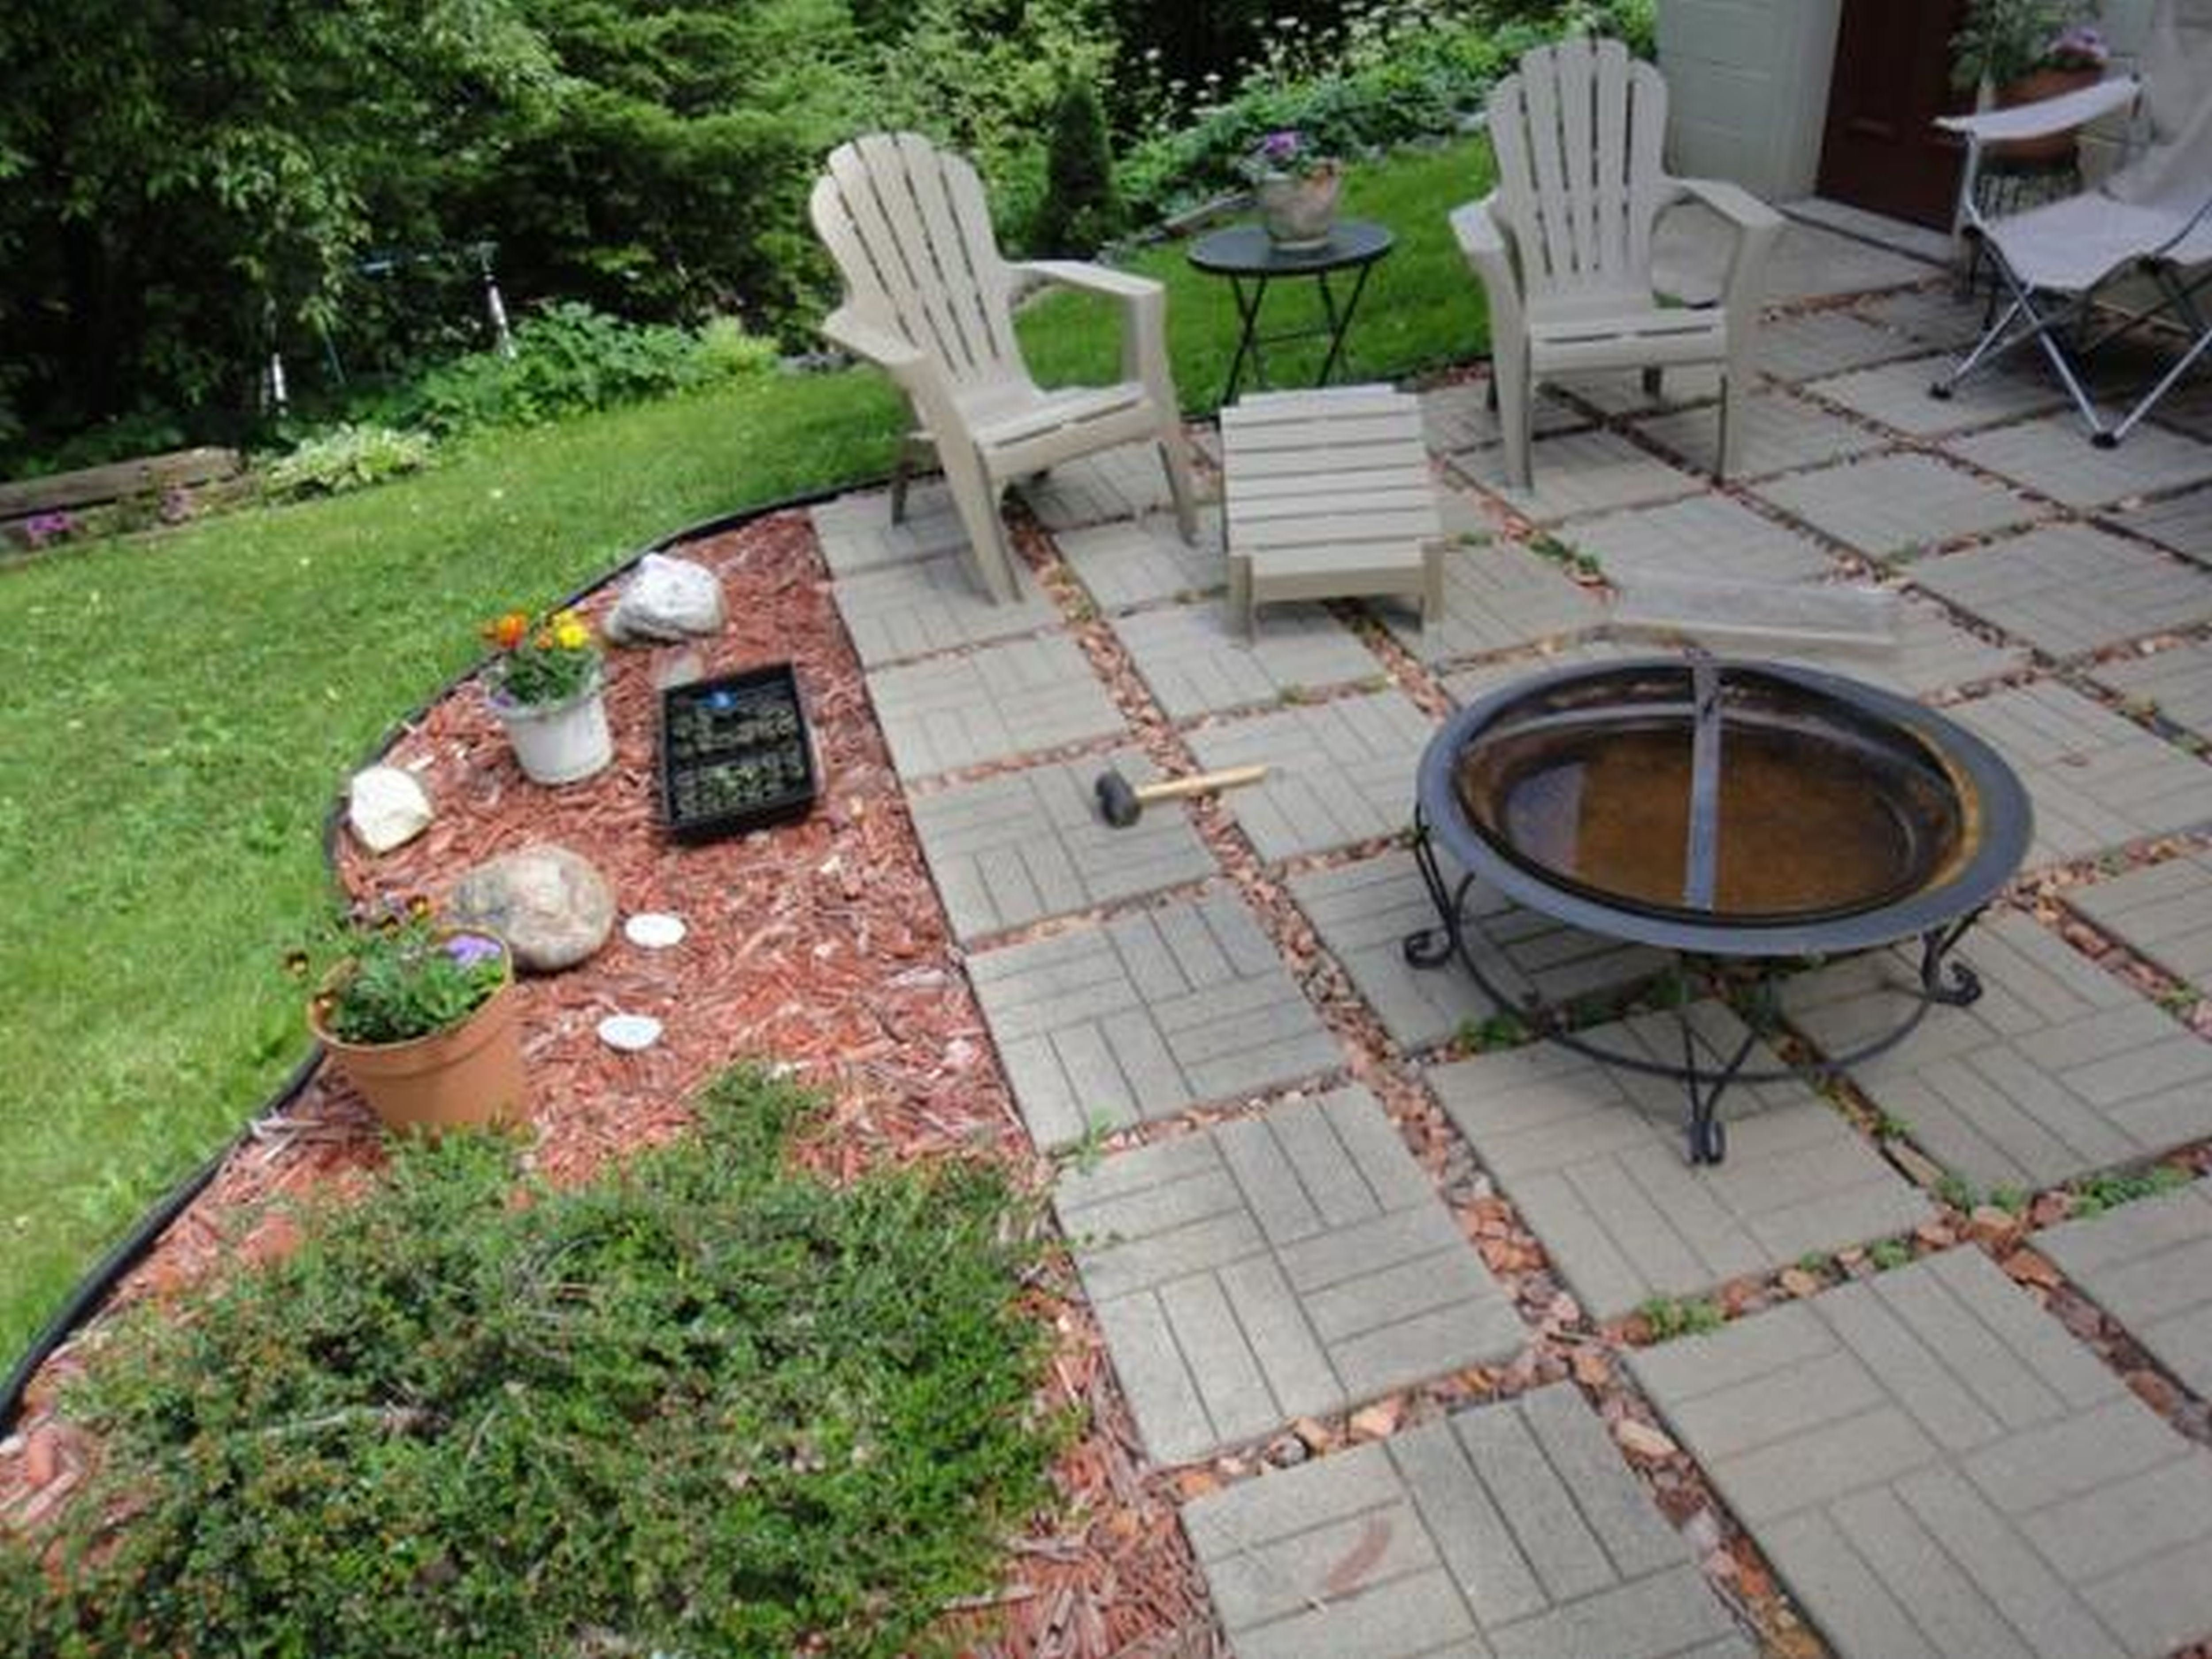 10 Lovable Backyard Design Ideas On A Budget beautiful backyard design ideas on a budget livetomanage 2020